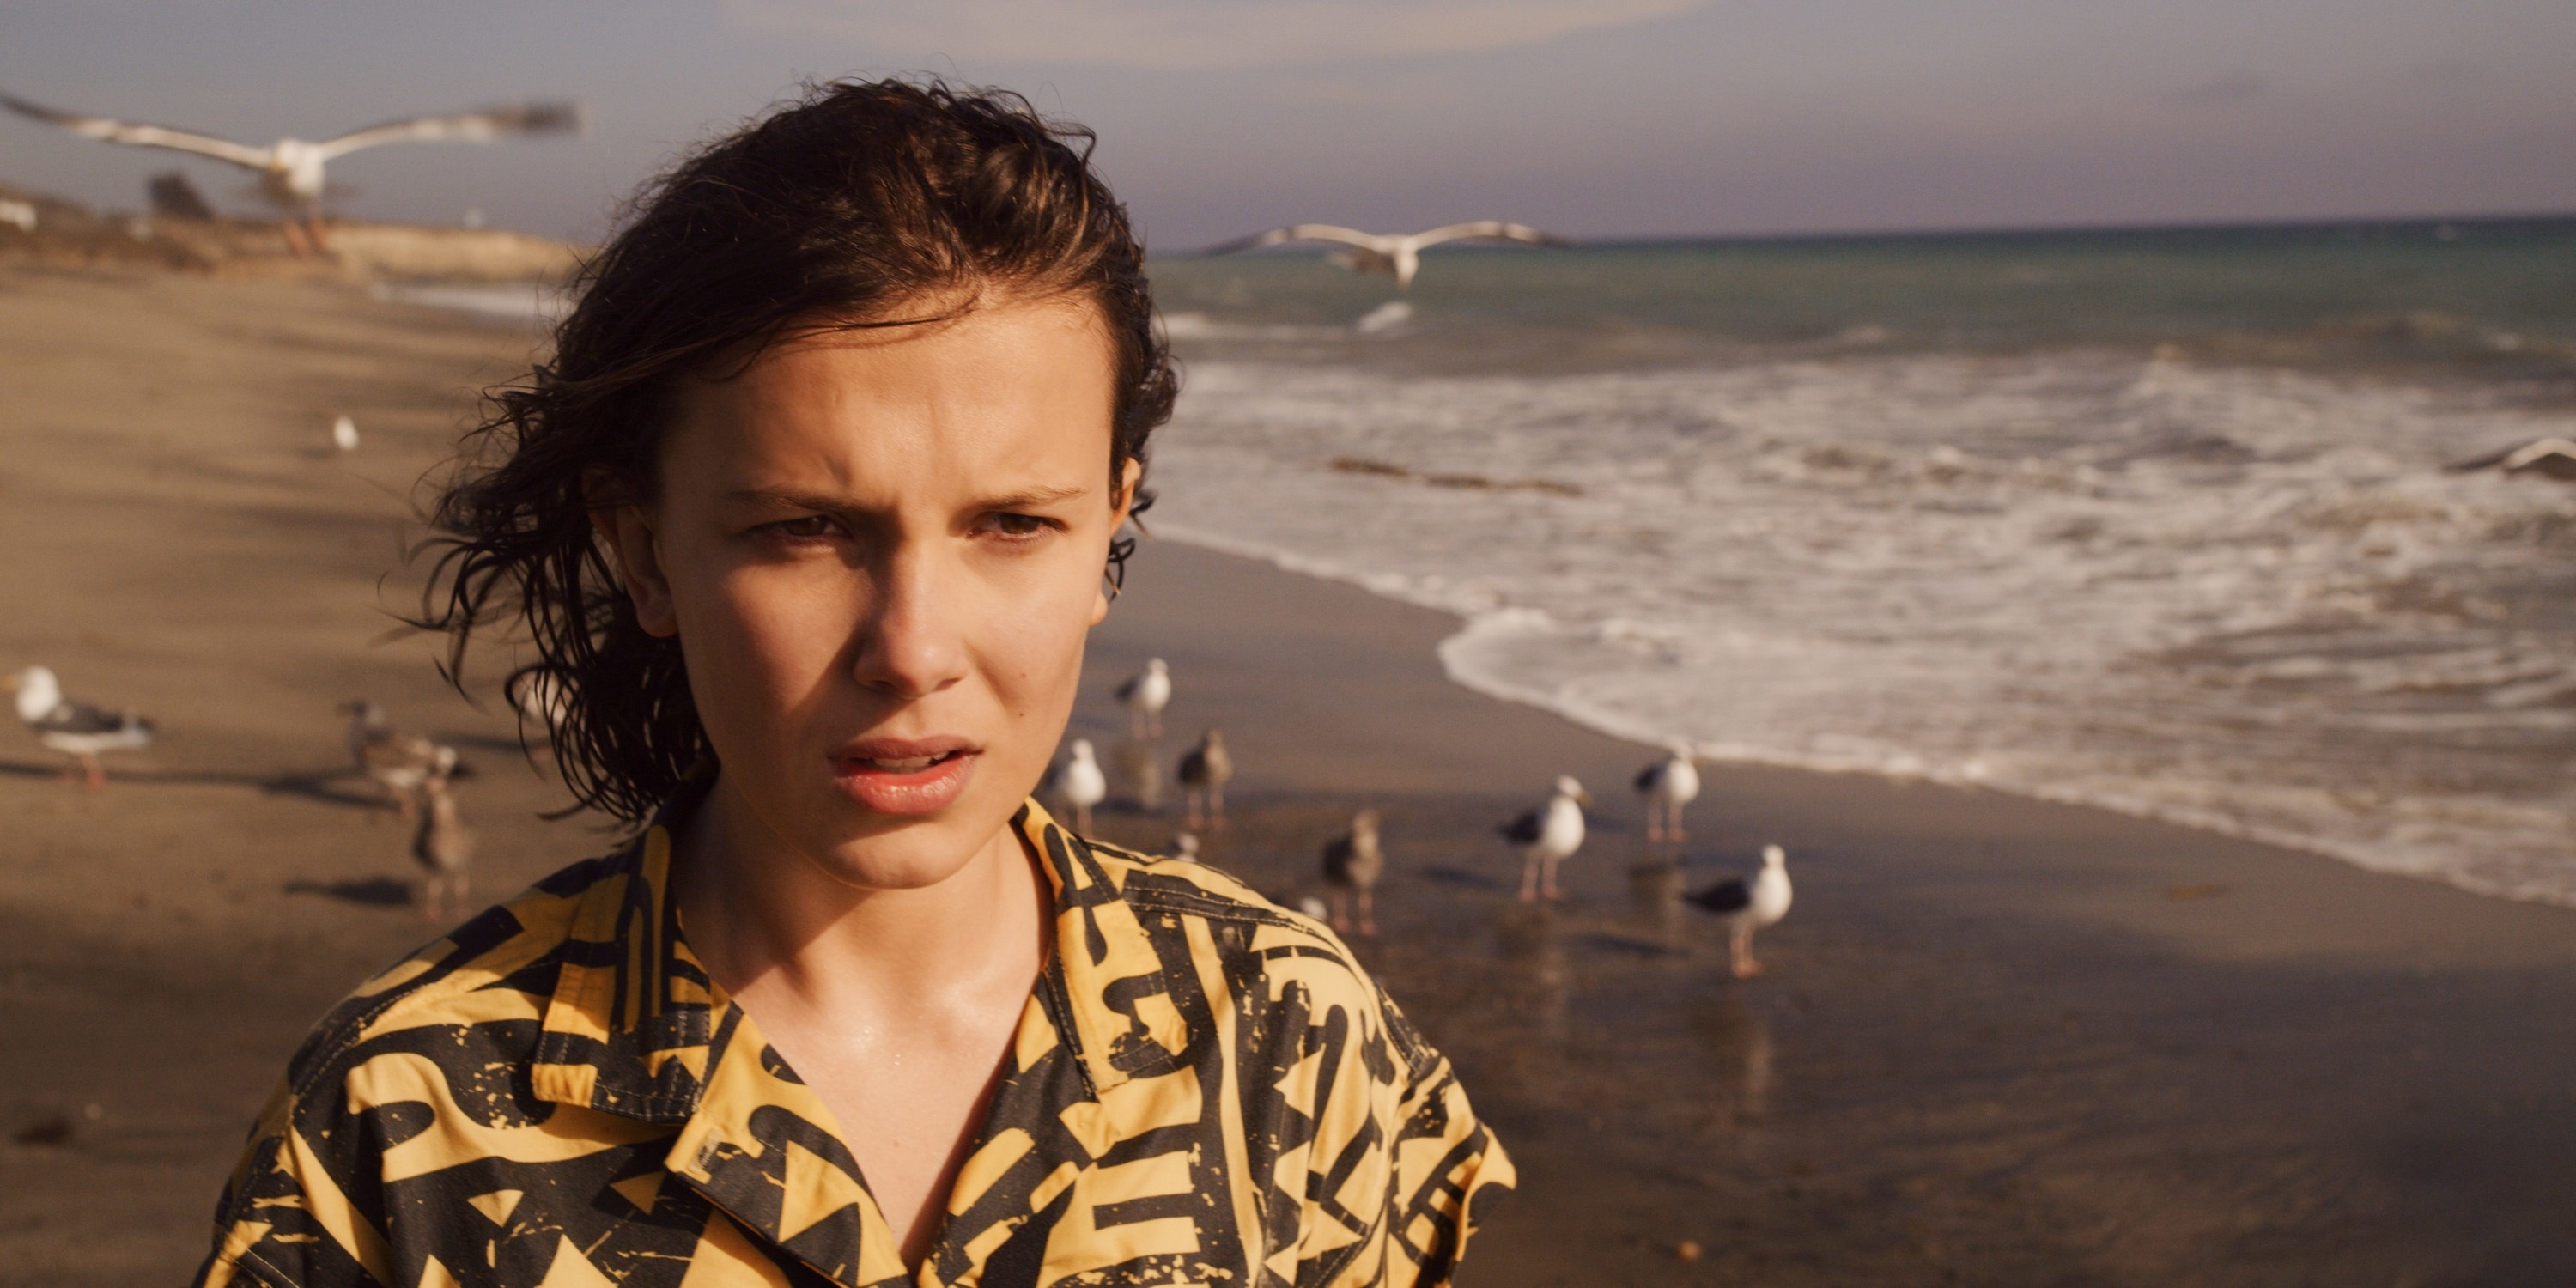 Eleven standing on a beach